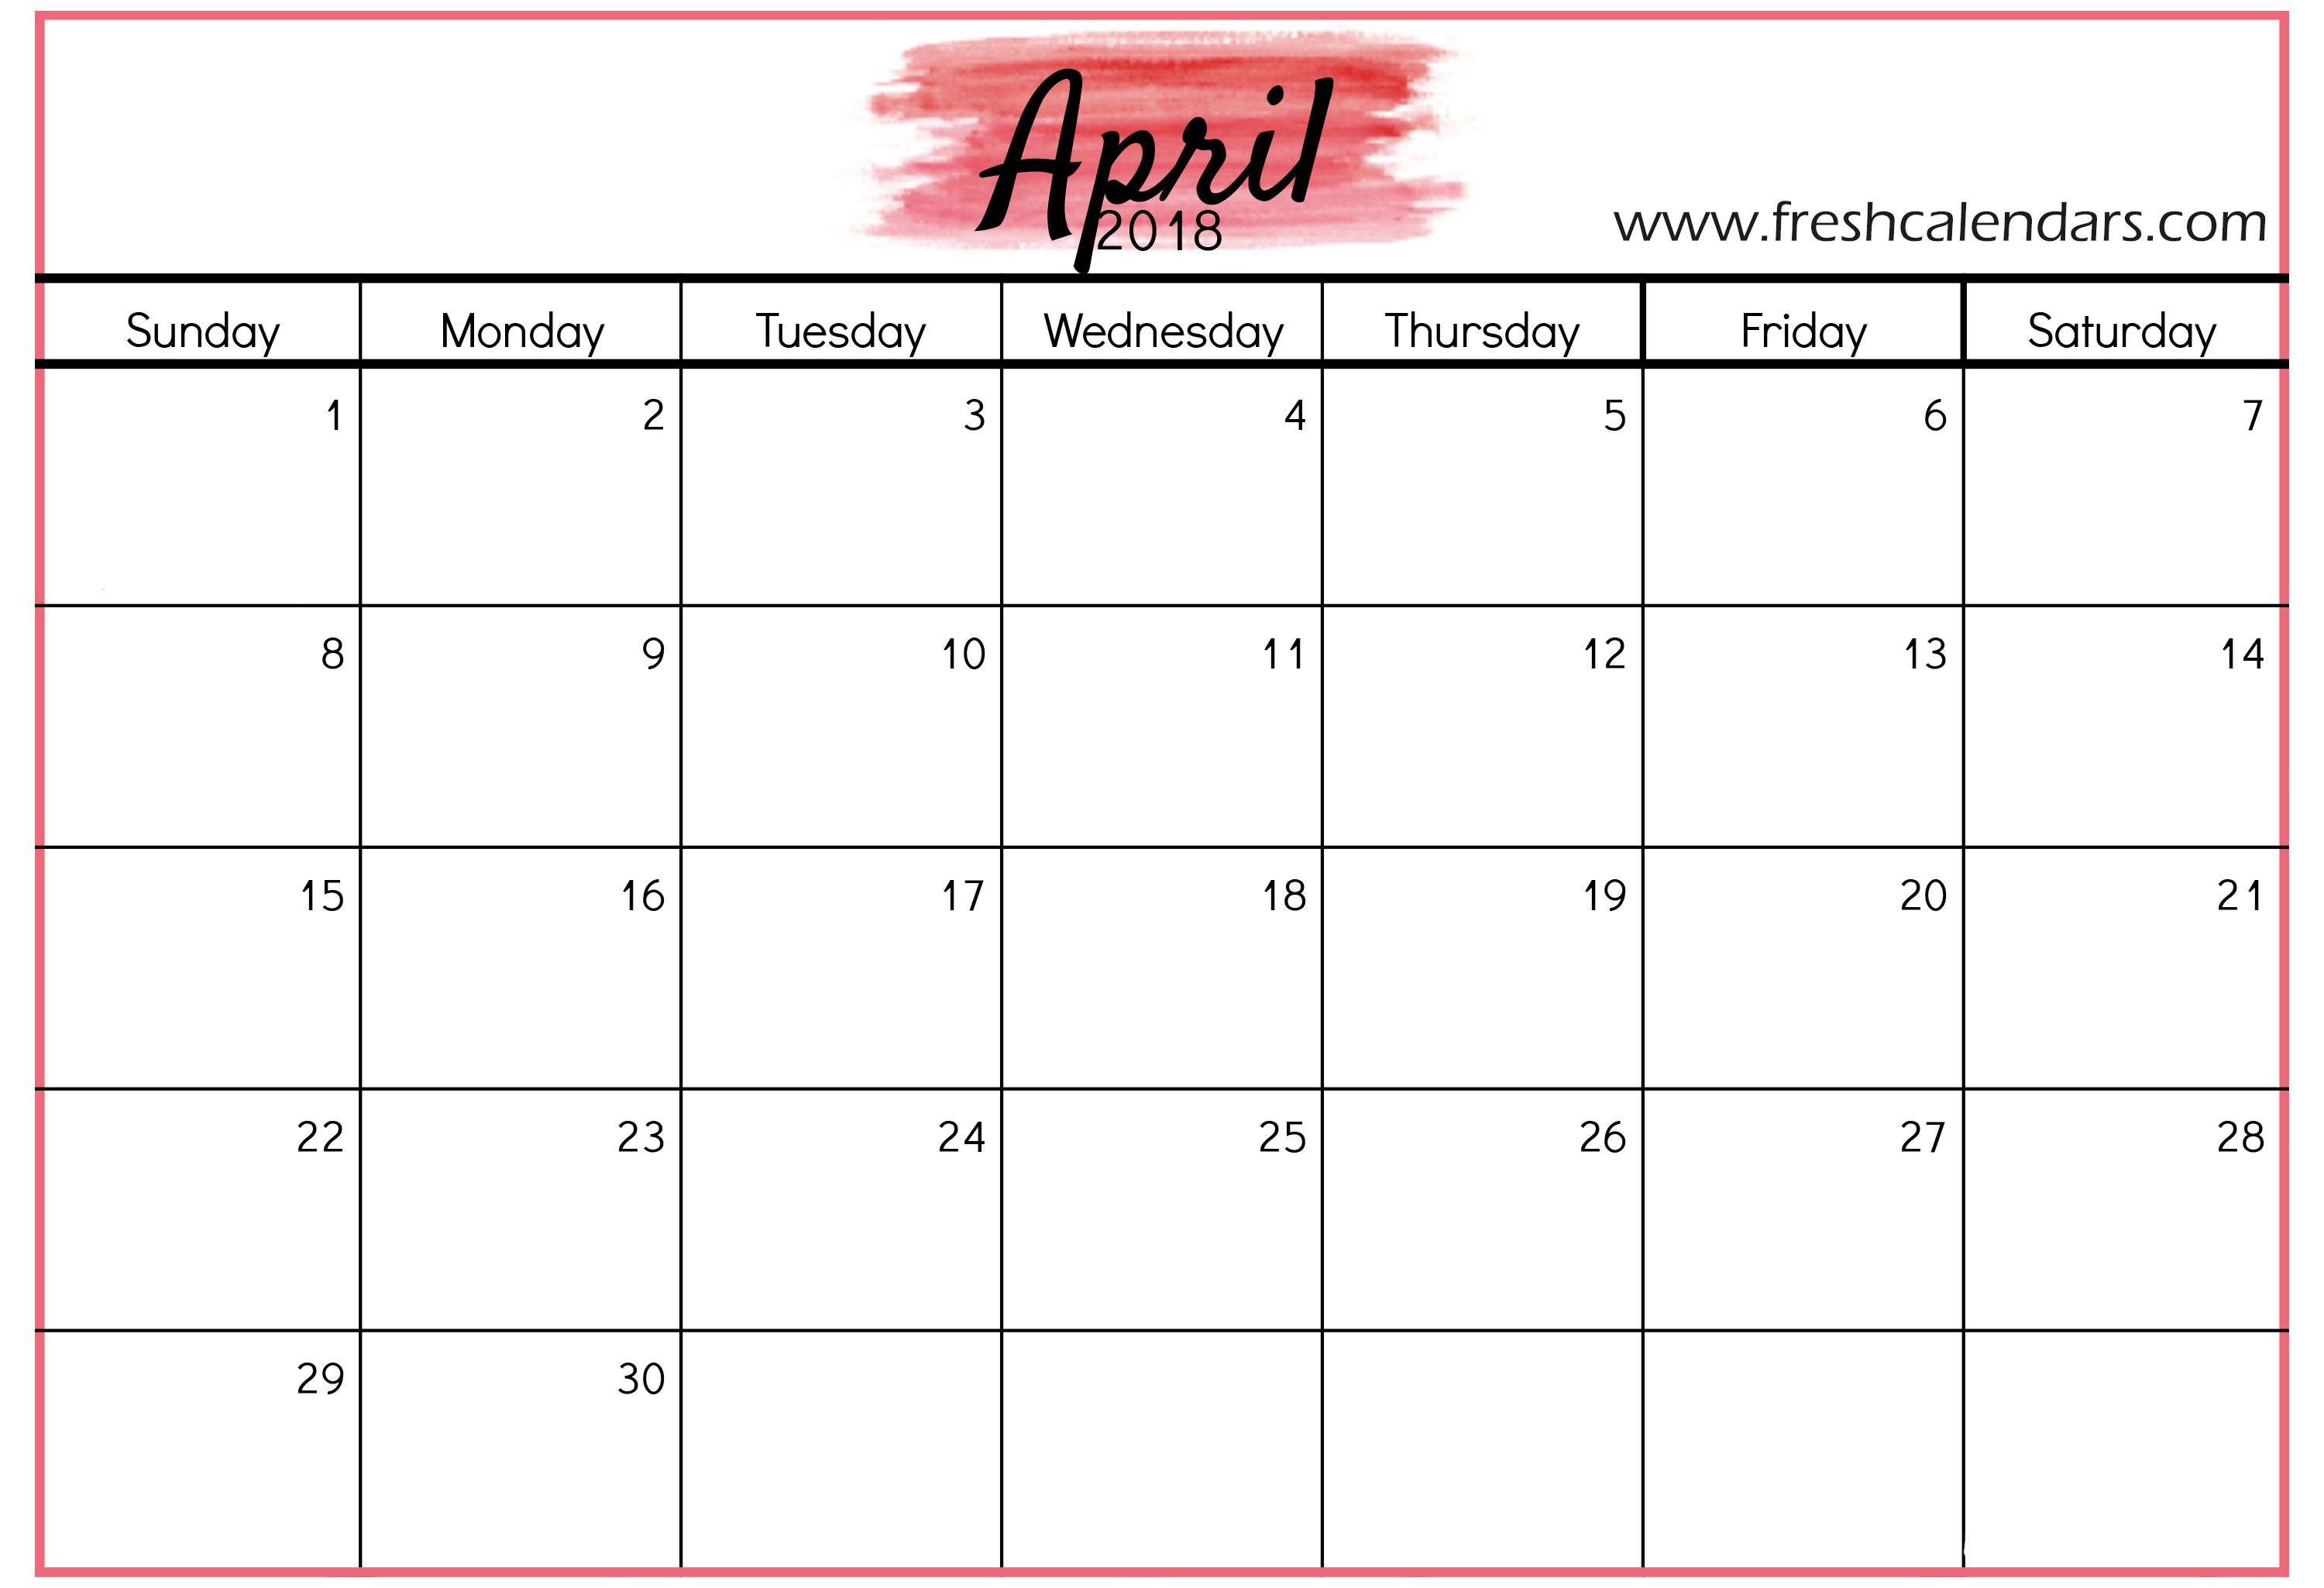 Apr 2018 Calendar Red Background Template